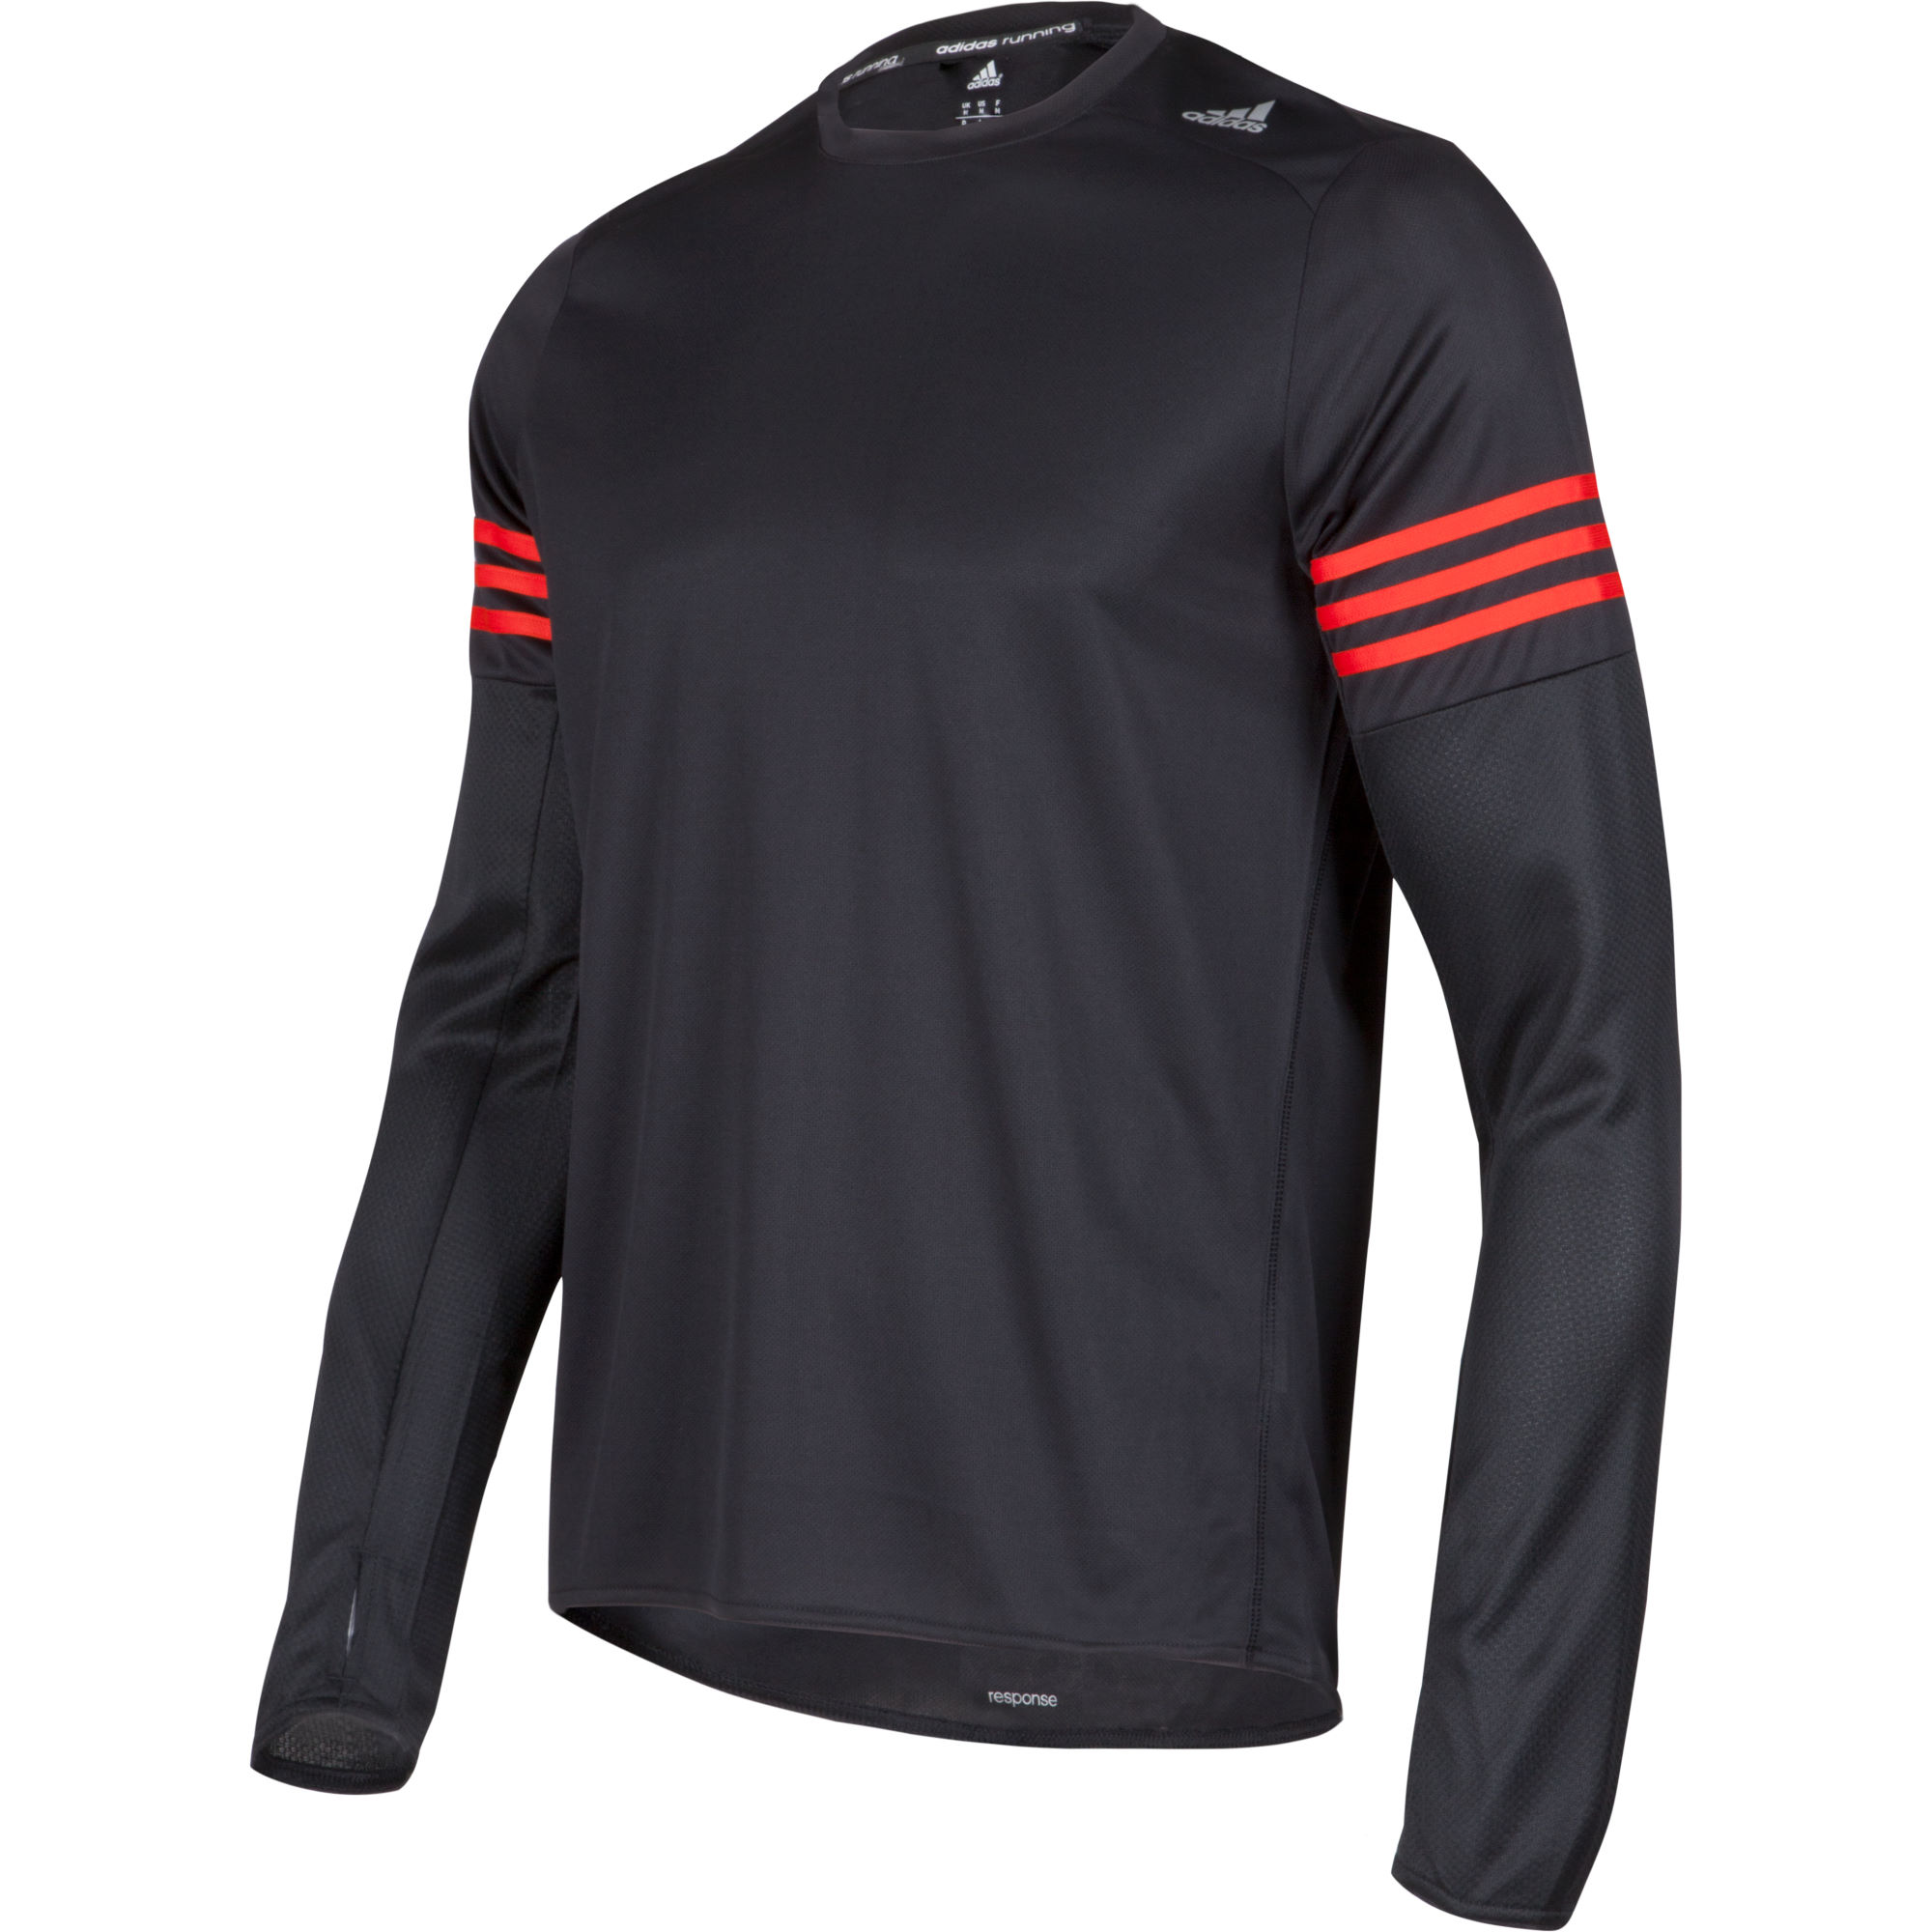 Wiggle  Adidas Response Long Sleeve Tee  AW15  Long Sleeve Running